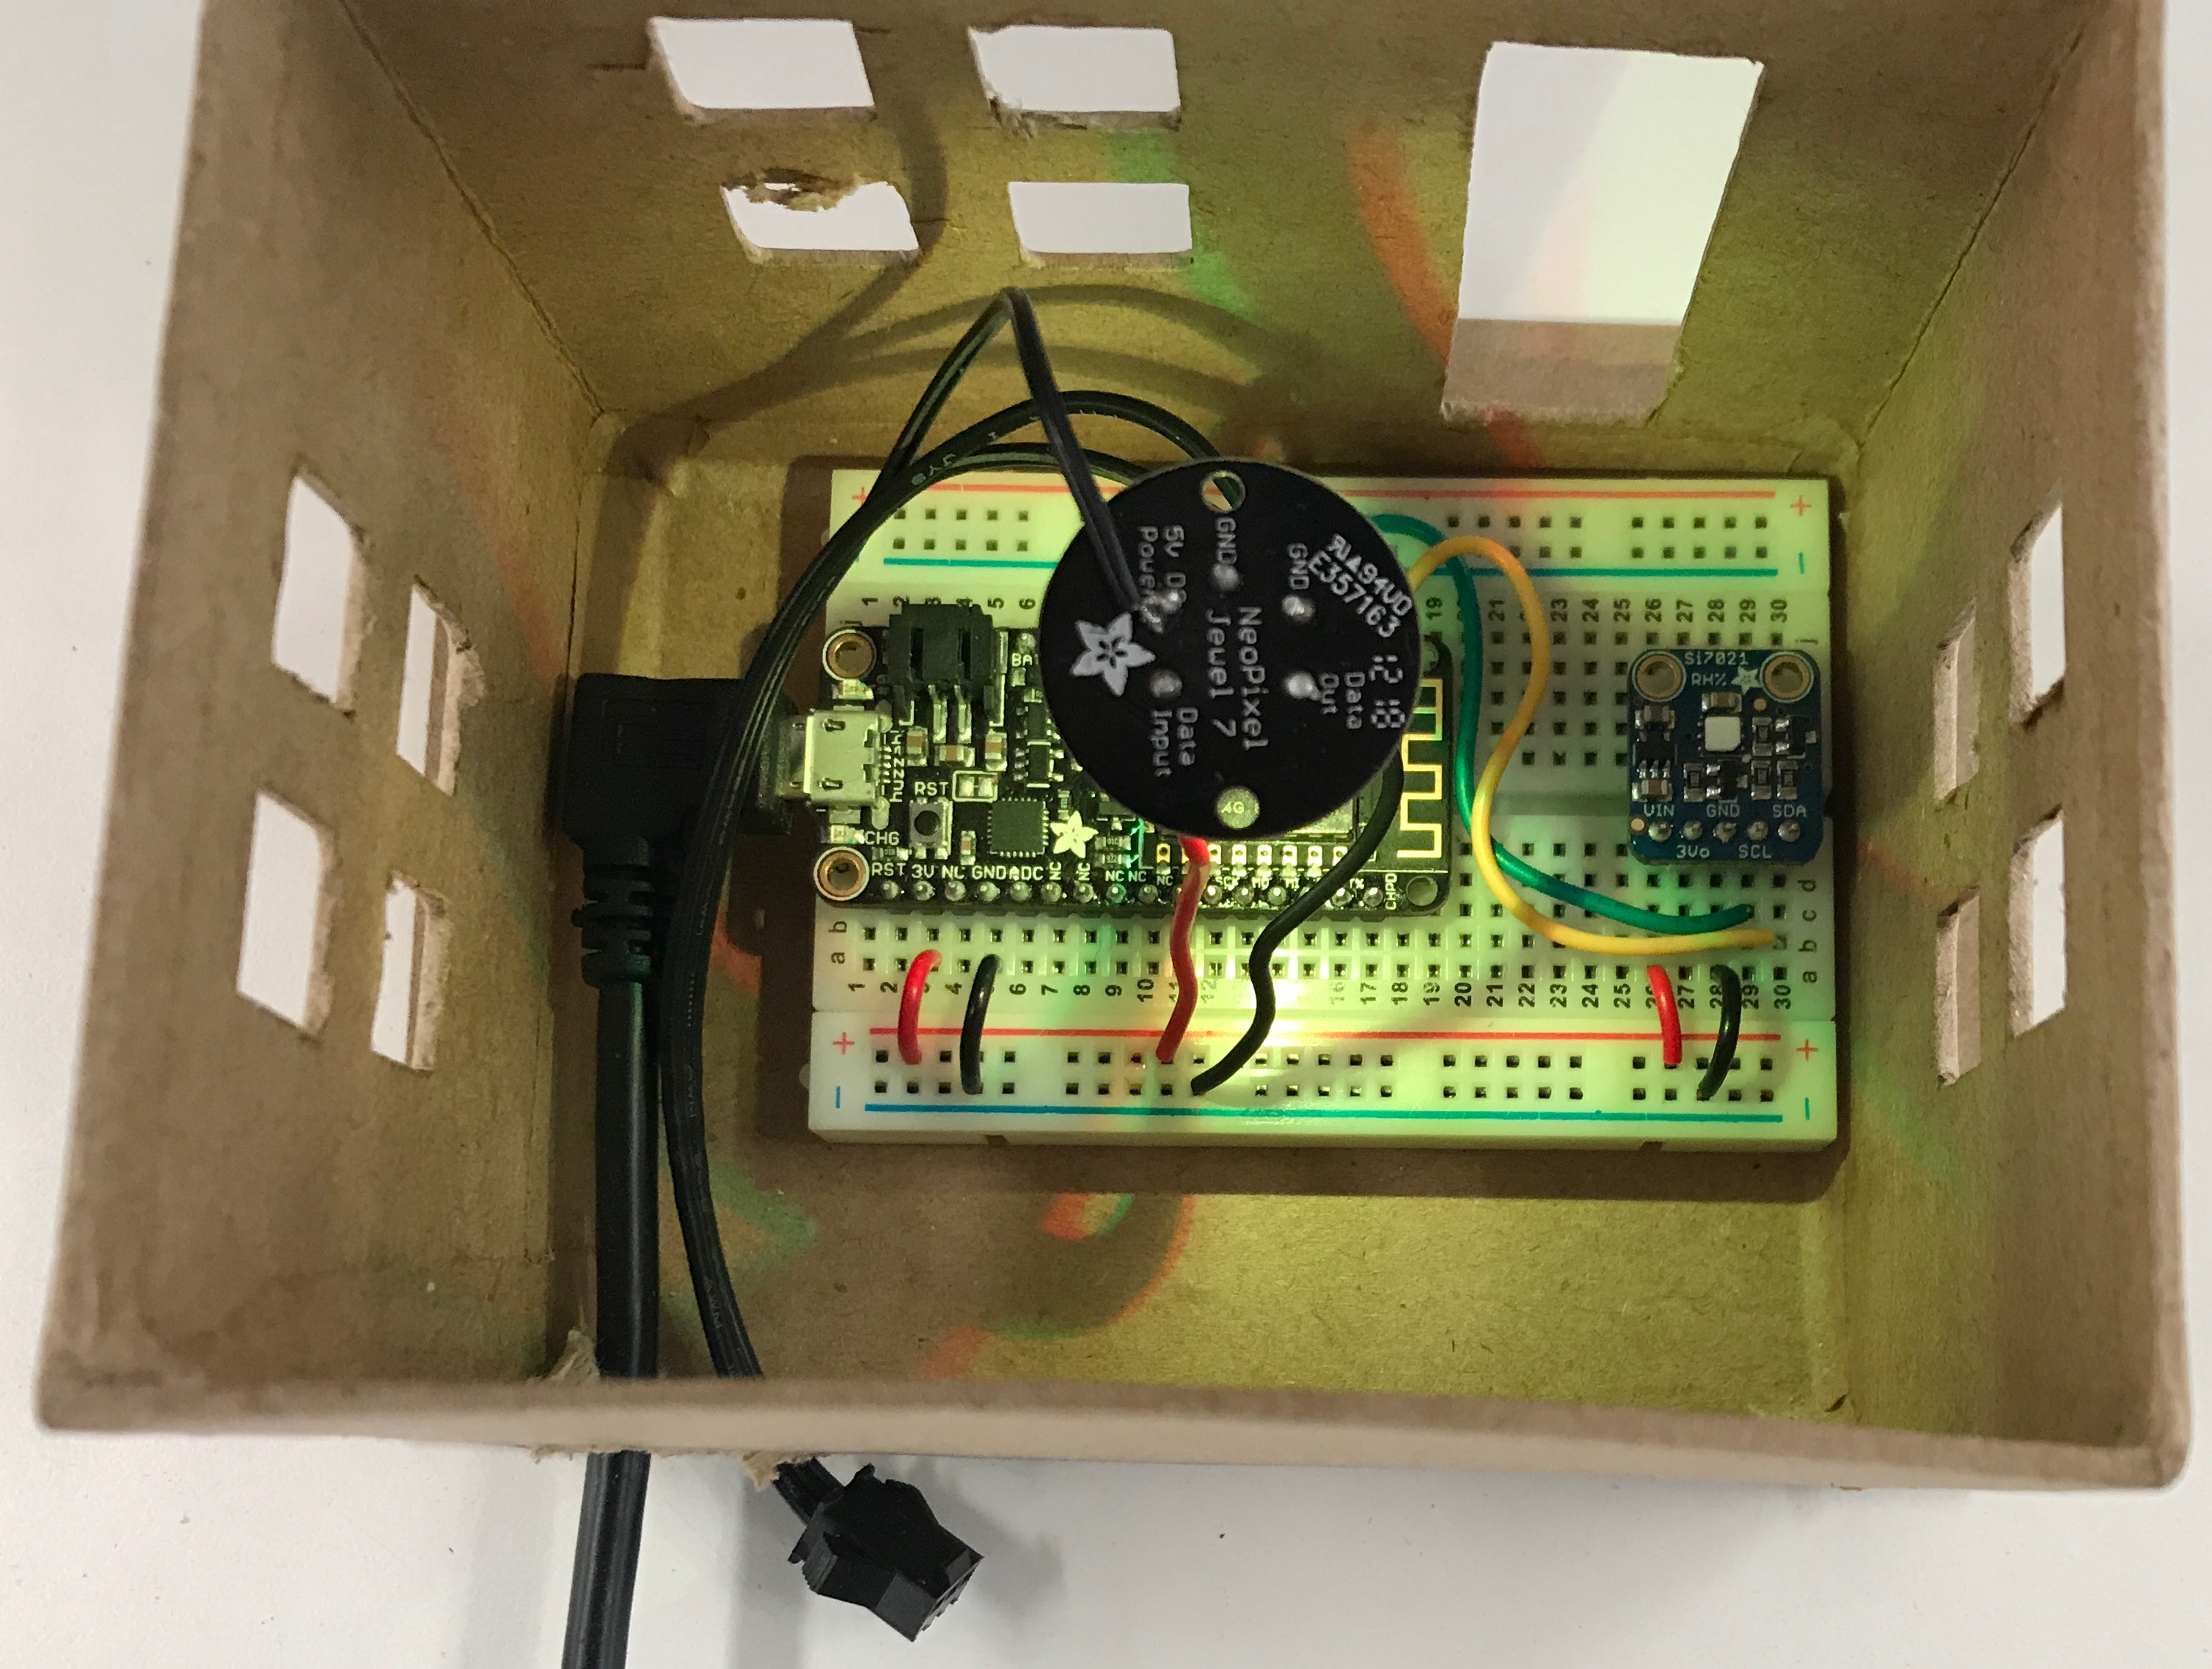 raspberry_pi_inside-house-layout.png